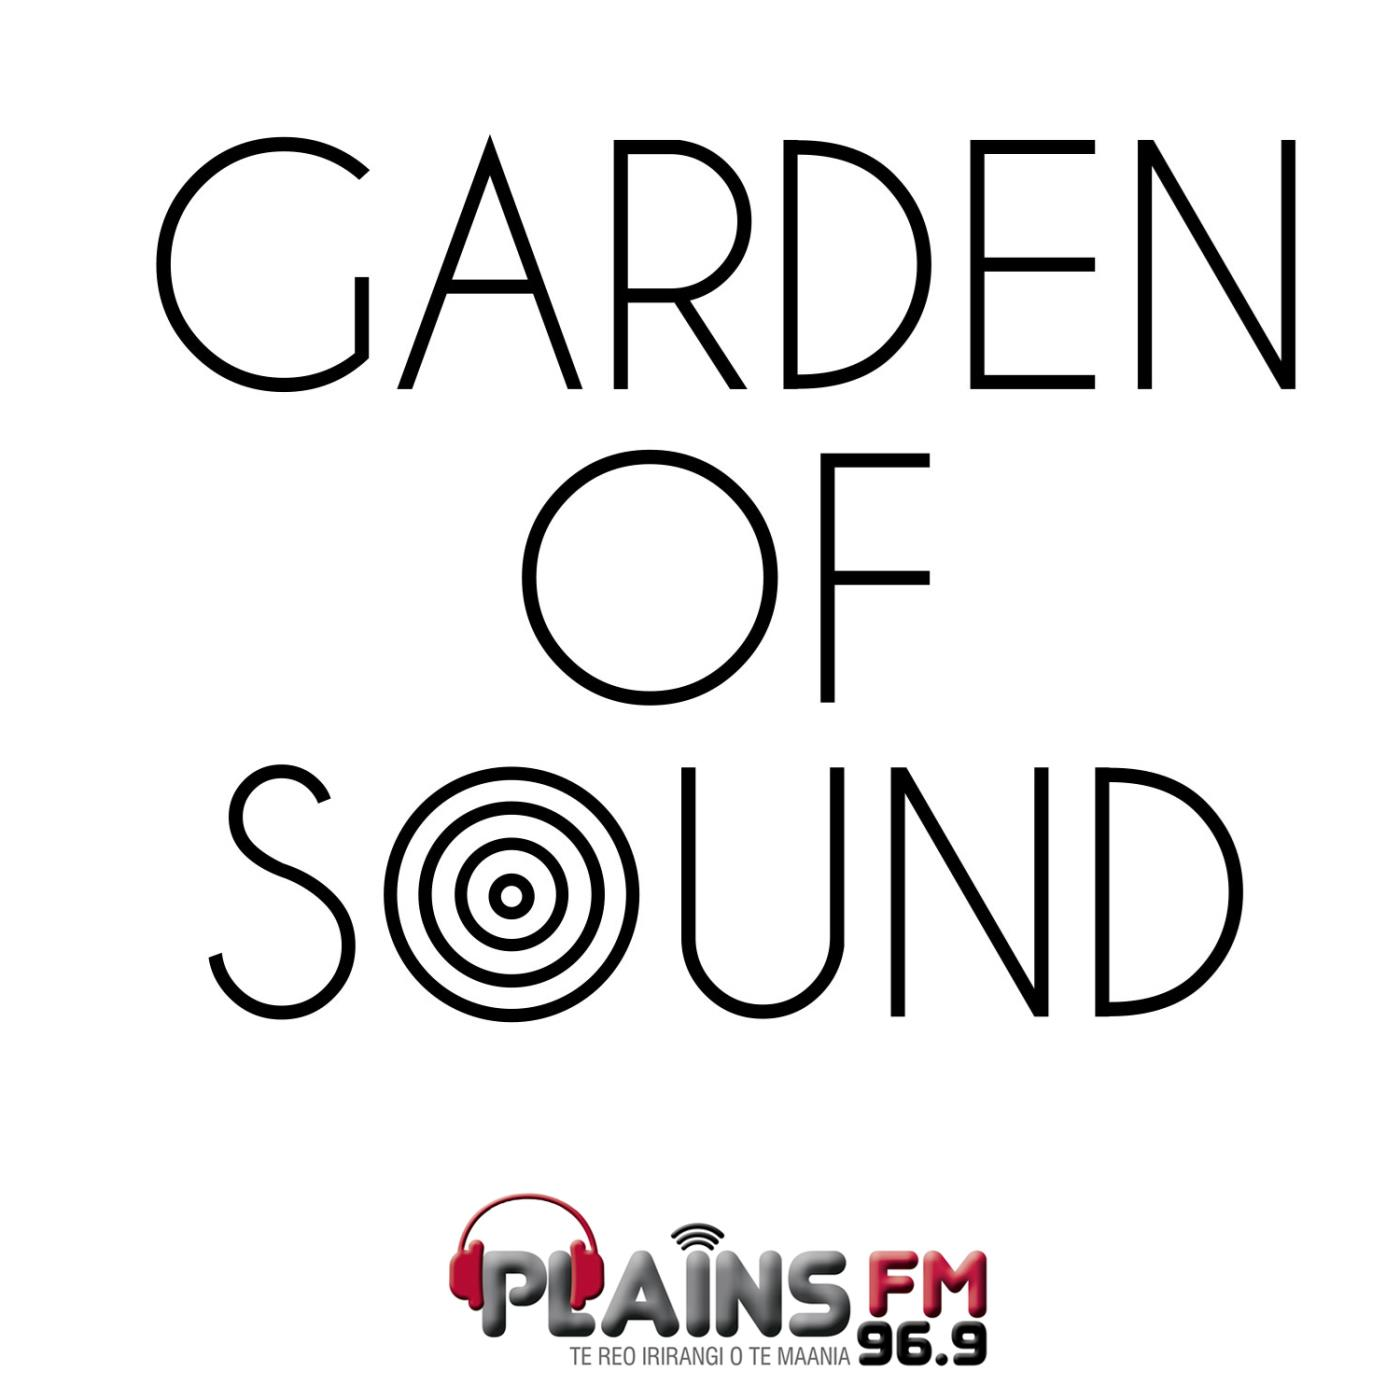 Garden of Sound - Elvis Arthur